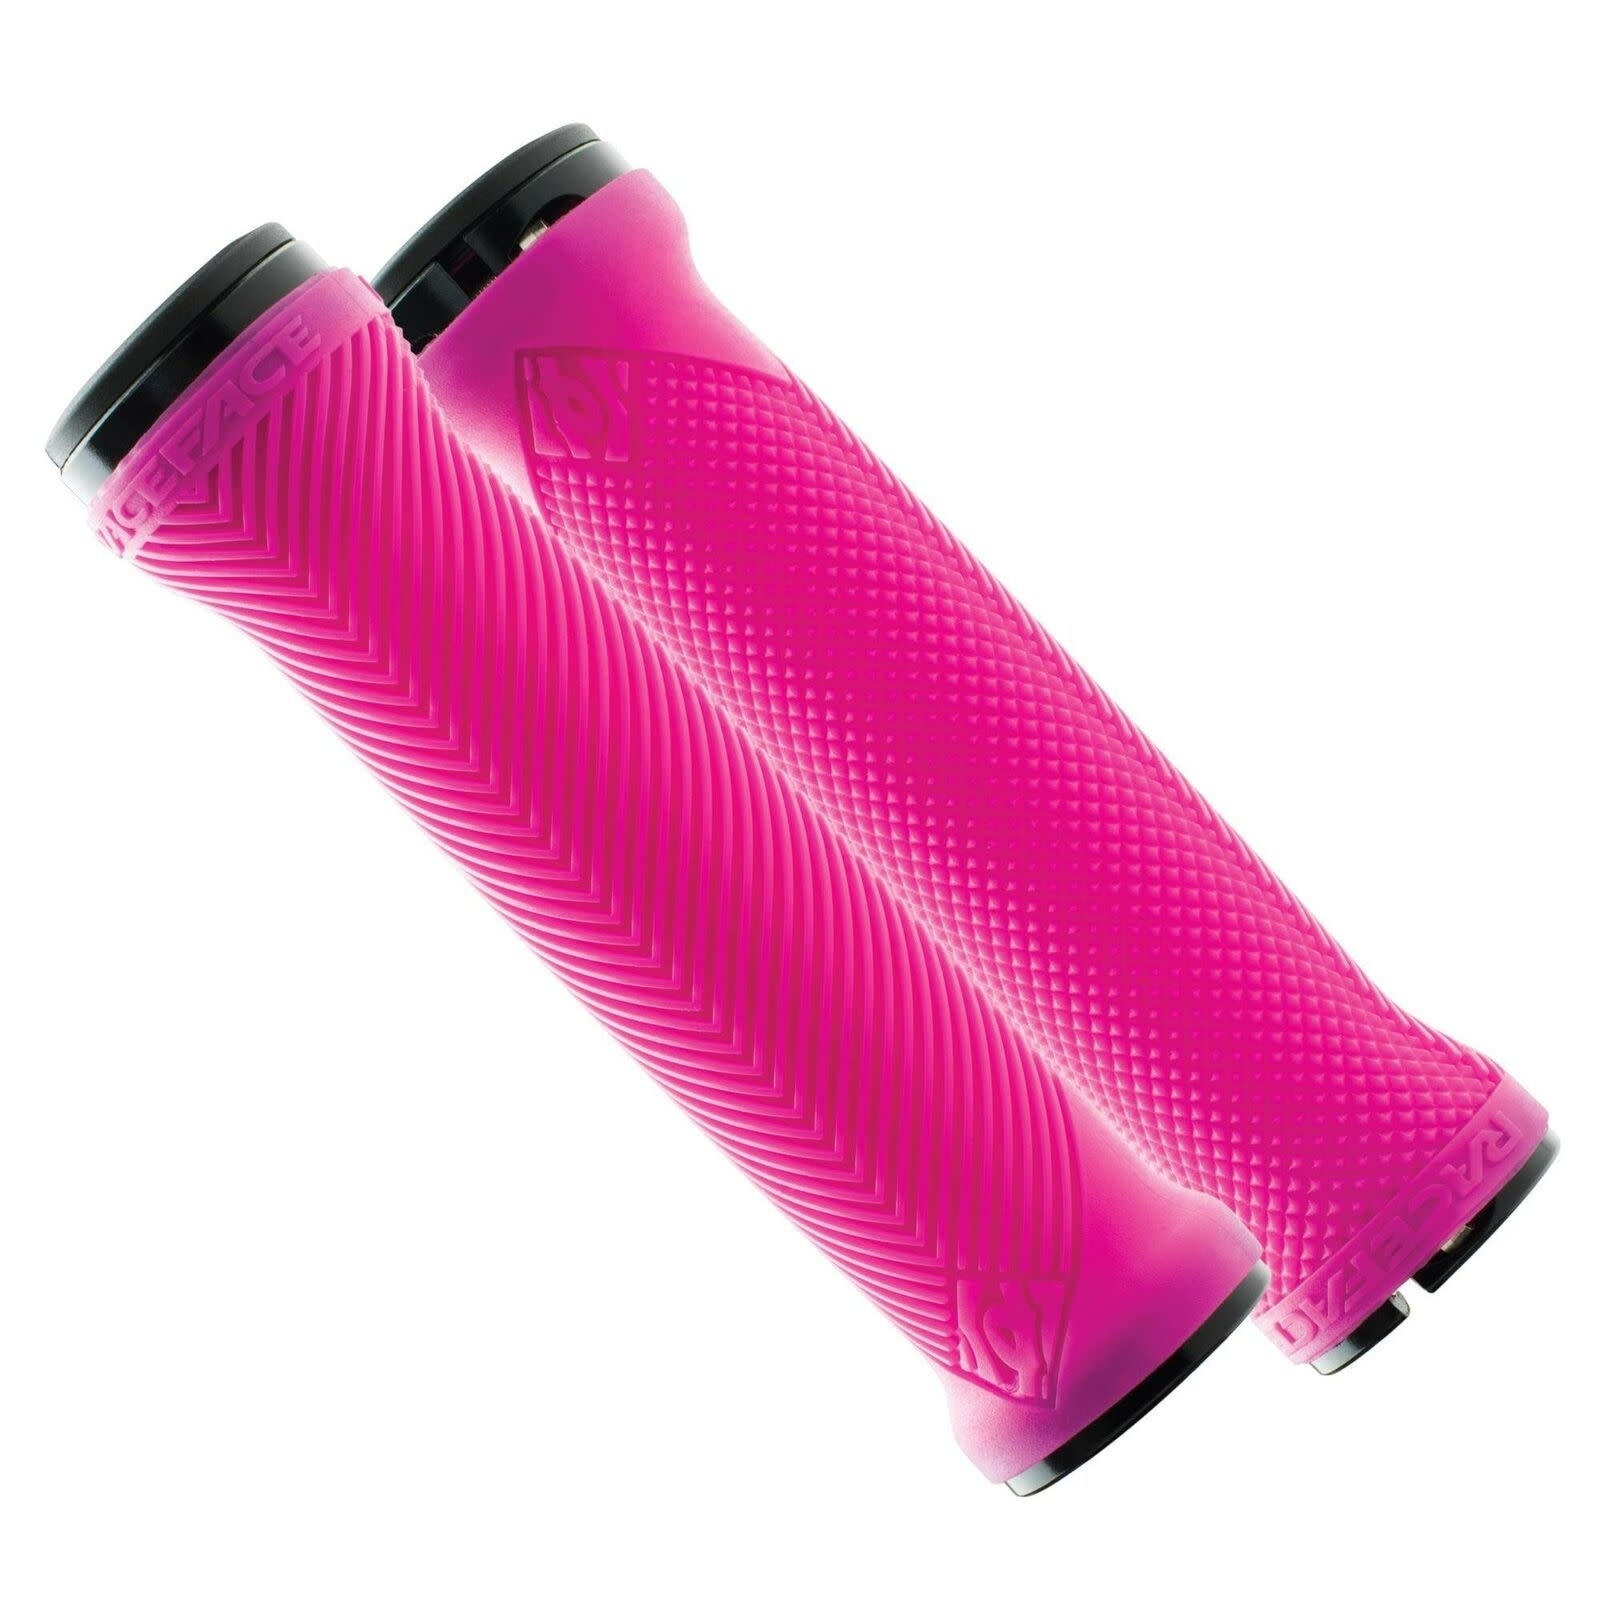 Race Face Love Handle Silicone Grips, Pink NLS